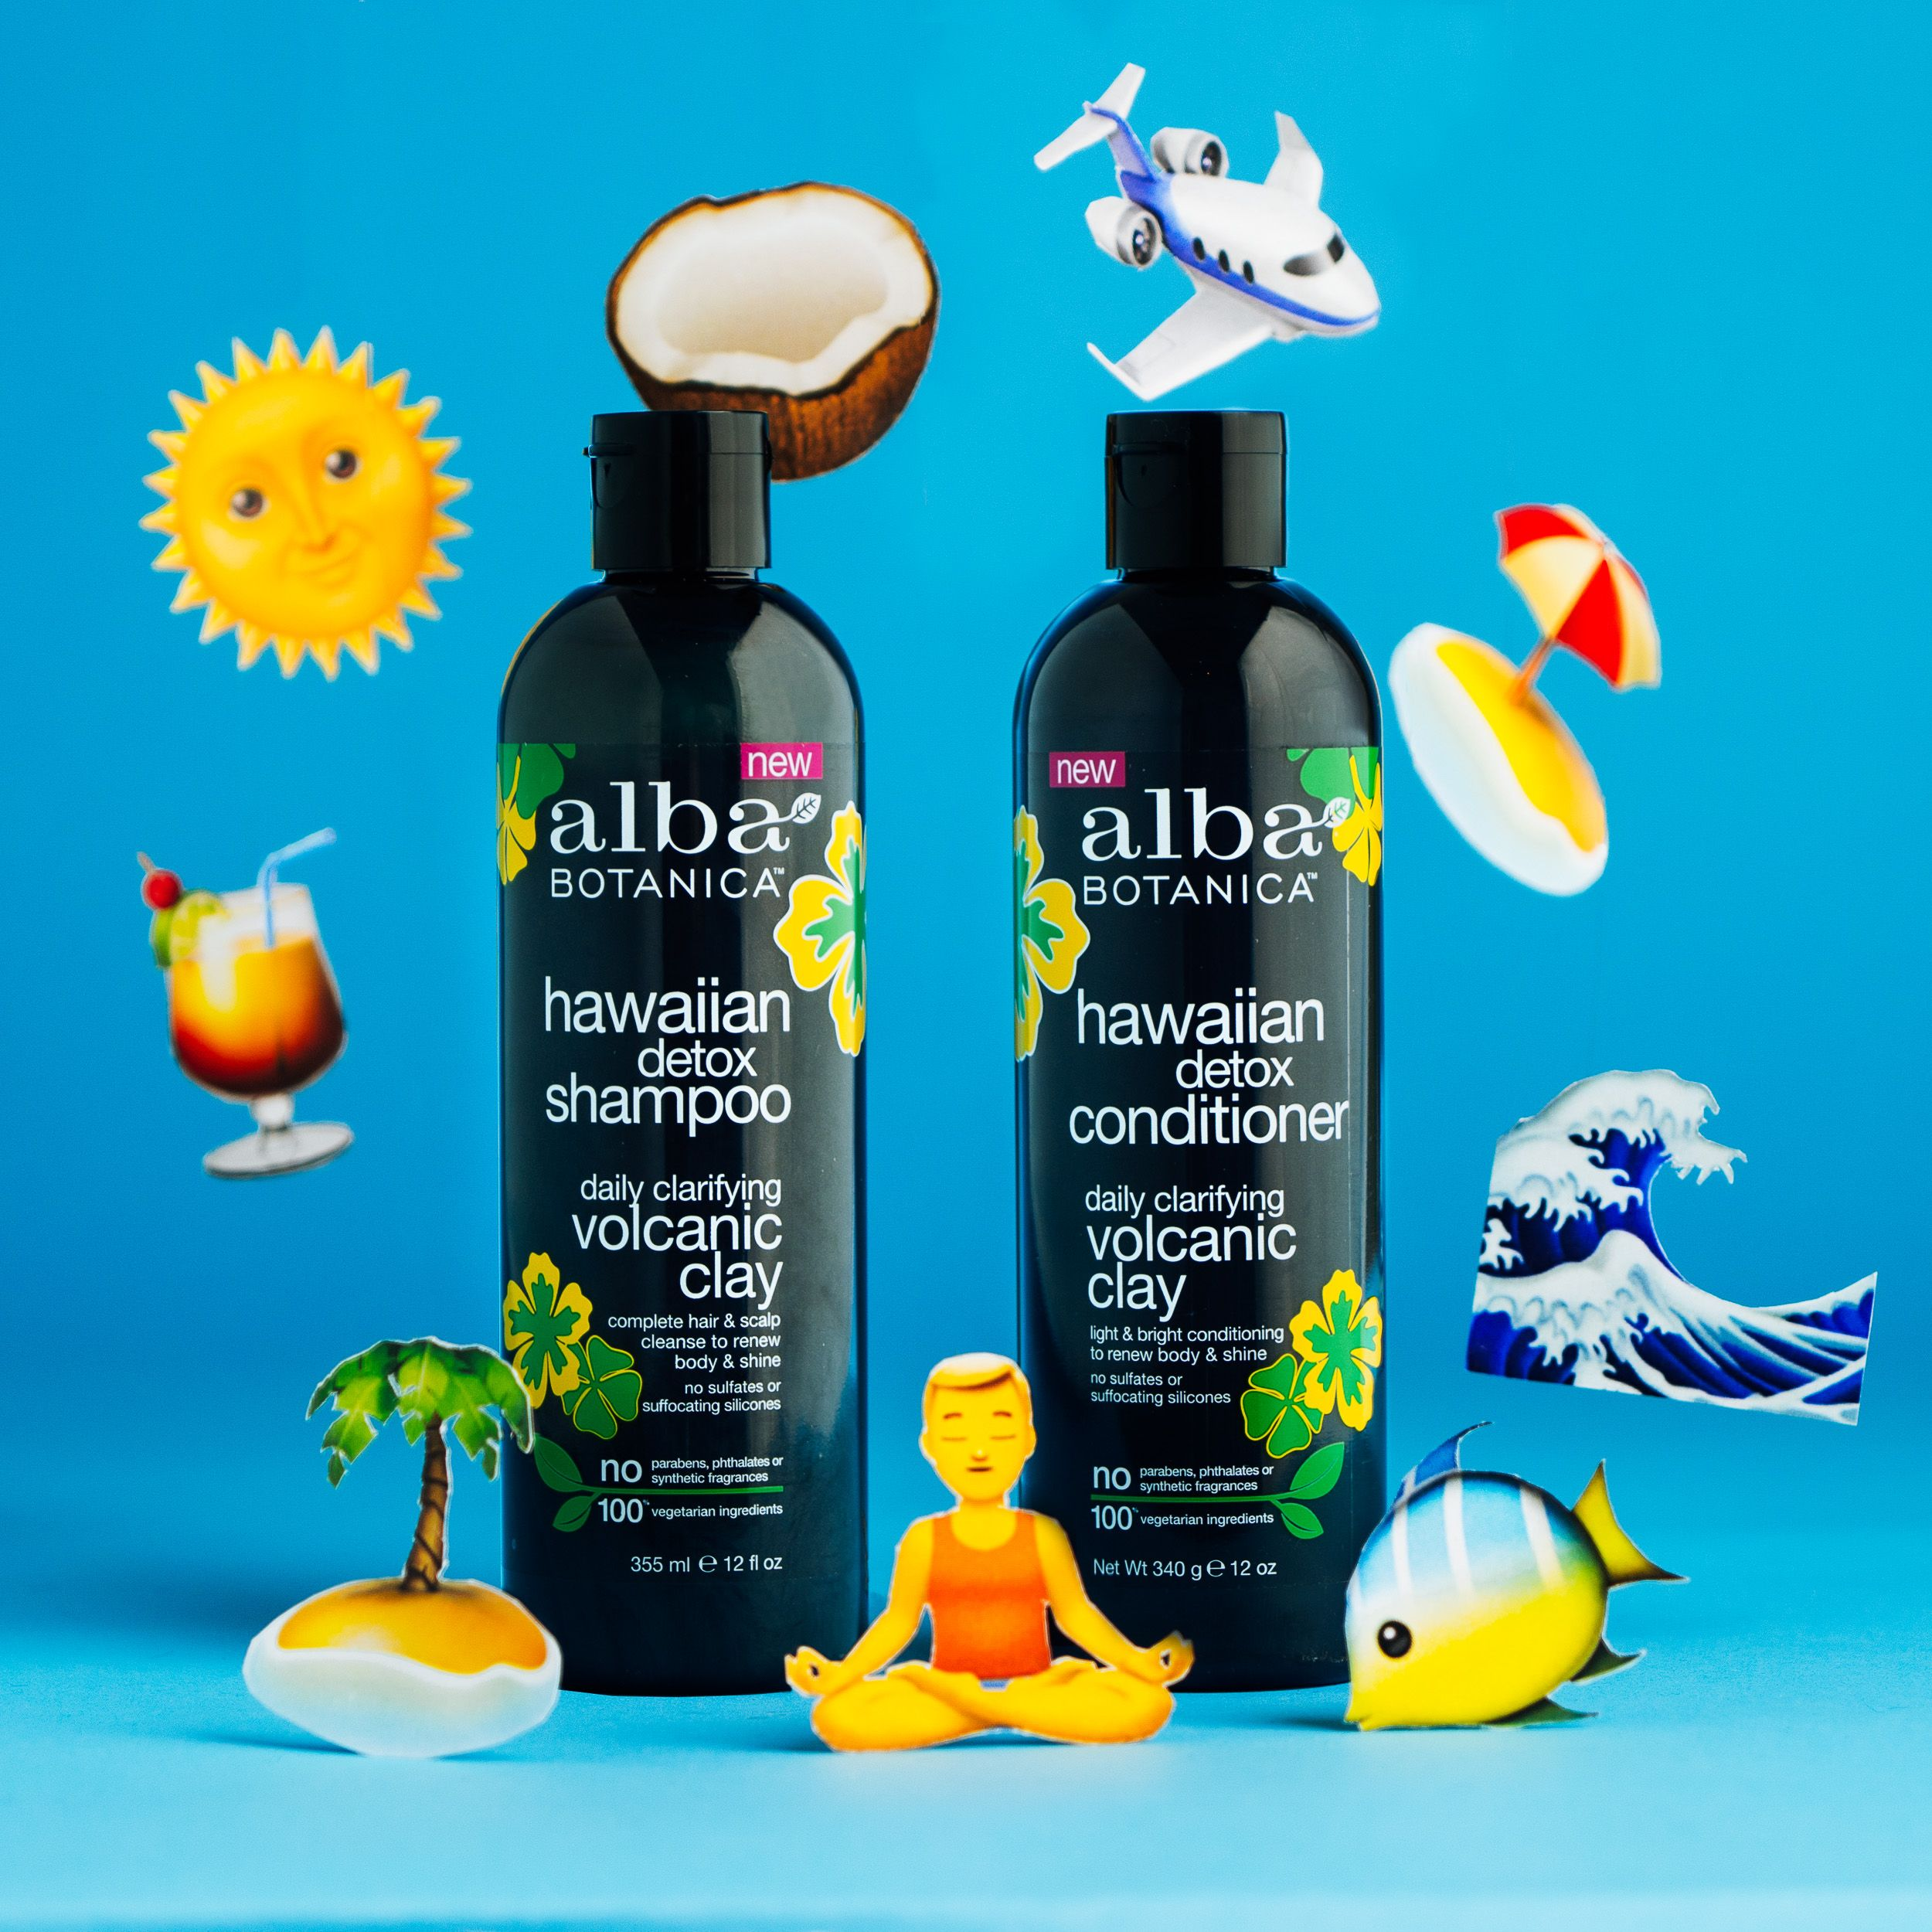 Say Aloha To Our New Alba Botanica Hawaiian Detox Shampoo